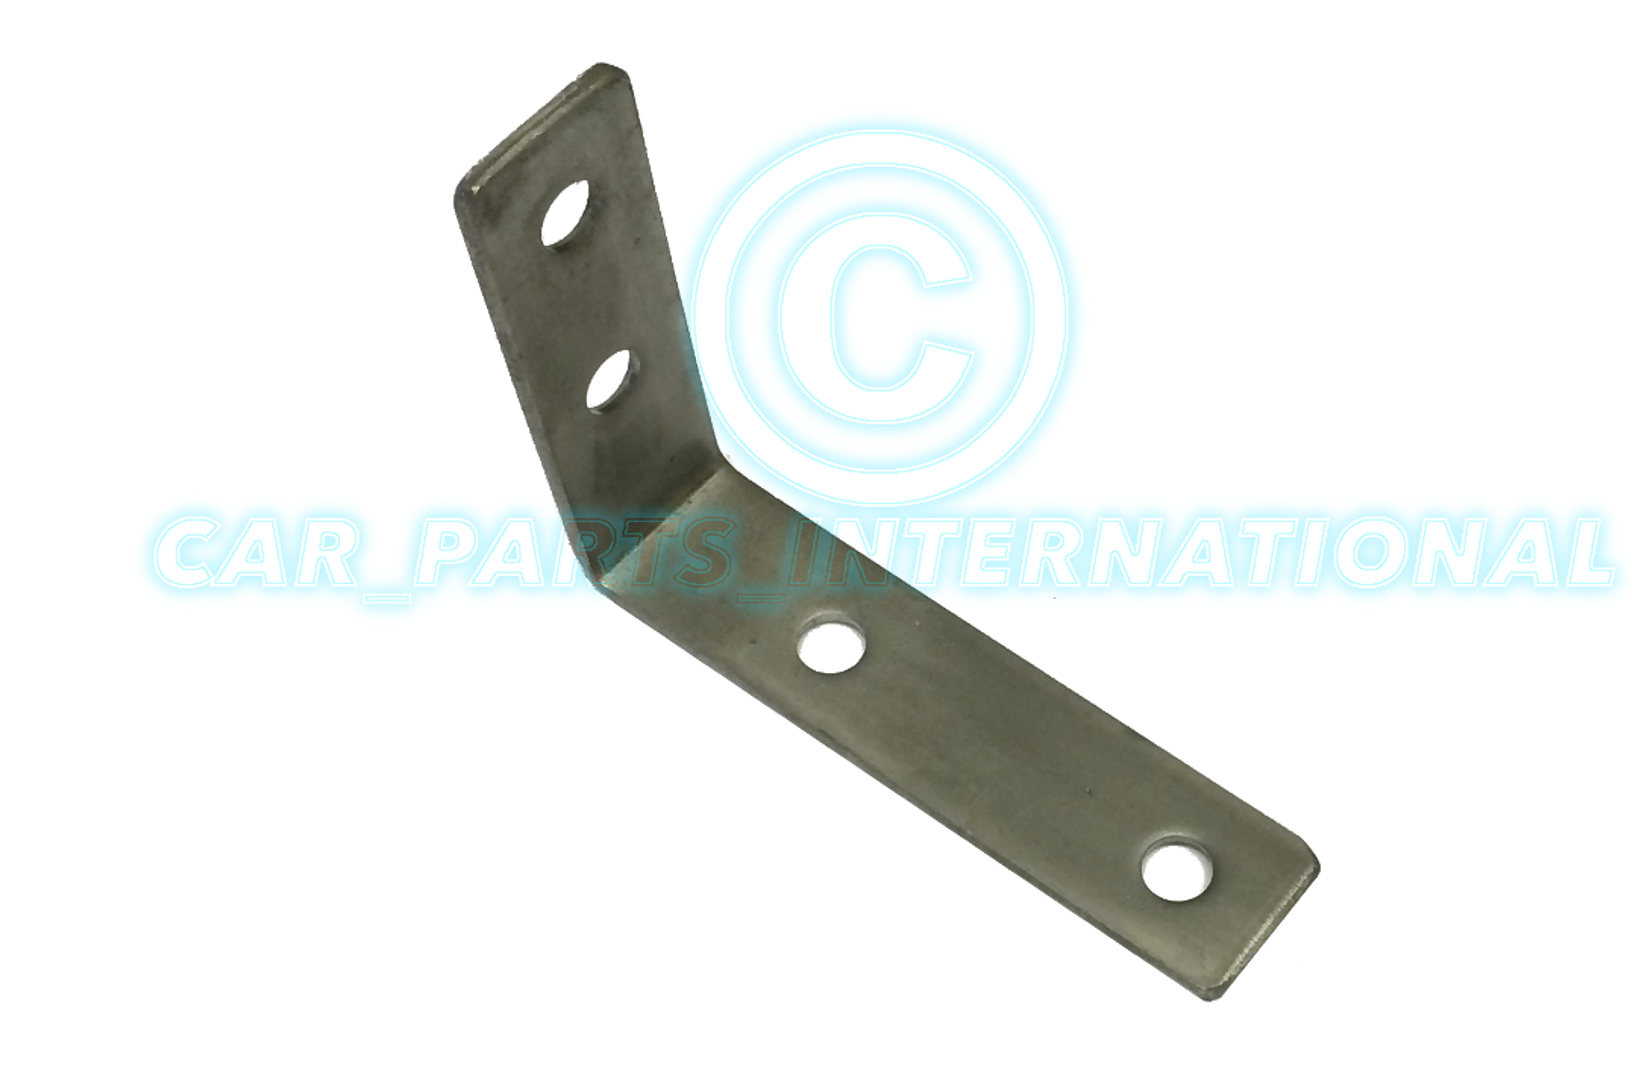 1x Small Trailer Mudguard Mounting Bracket Stainless Steel